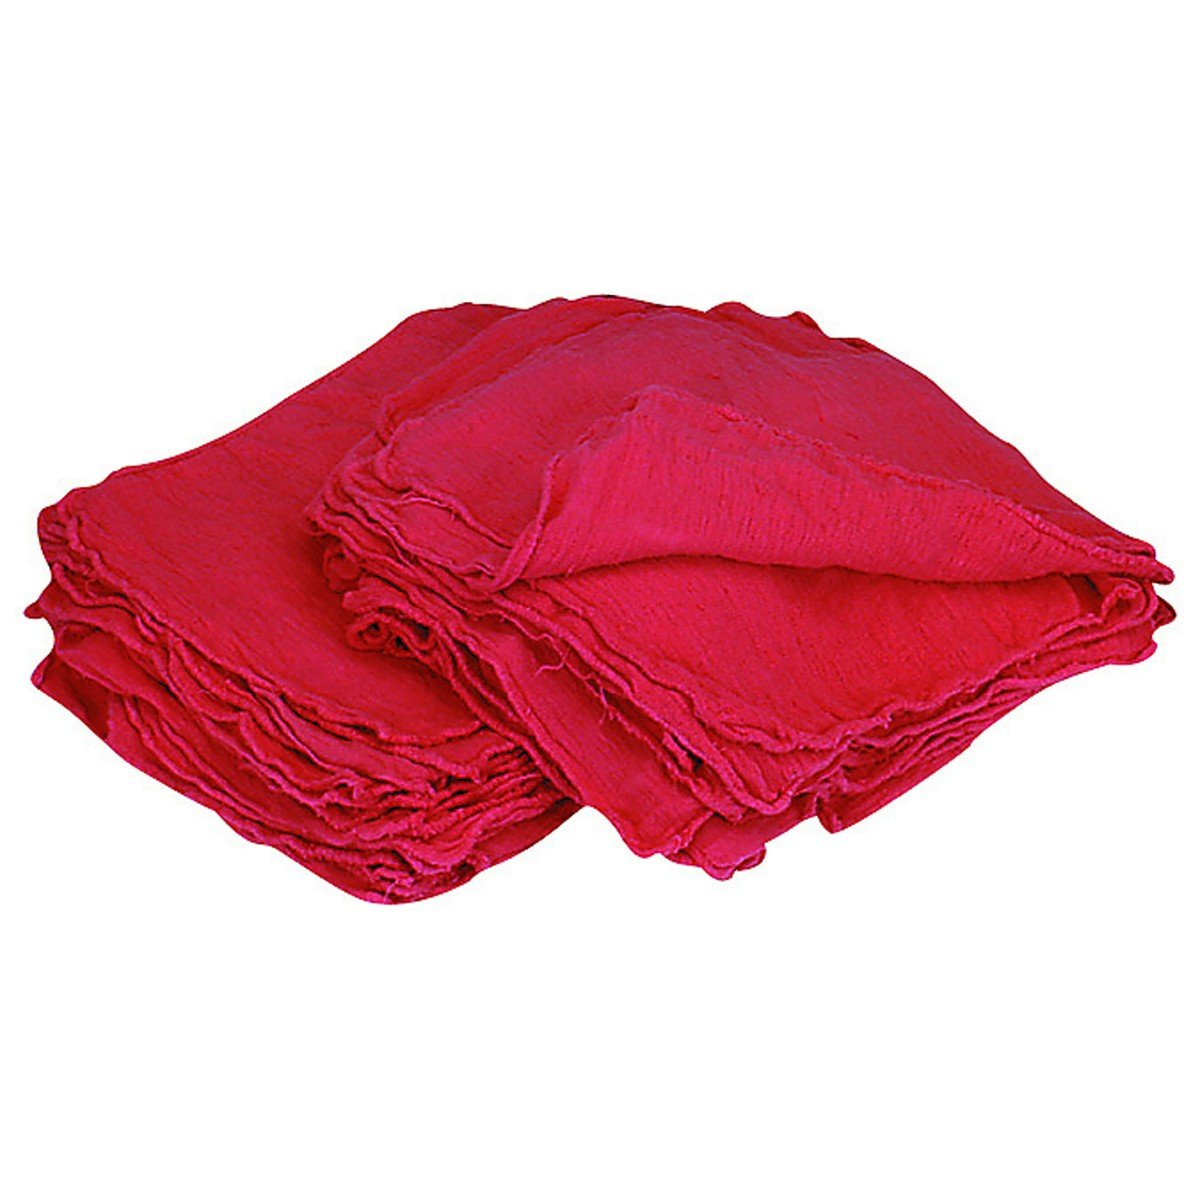 Tuf-Clean 21818 Shop Towels, 100% Cotton, Red, Bale of 2,500 by Tuf-Clean (Image #2)